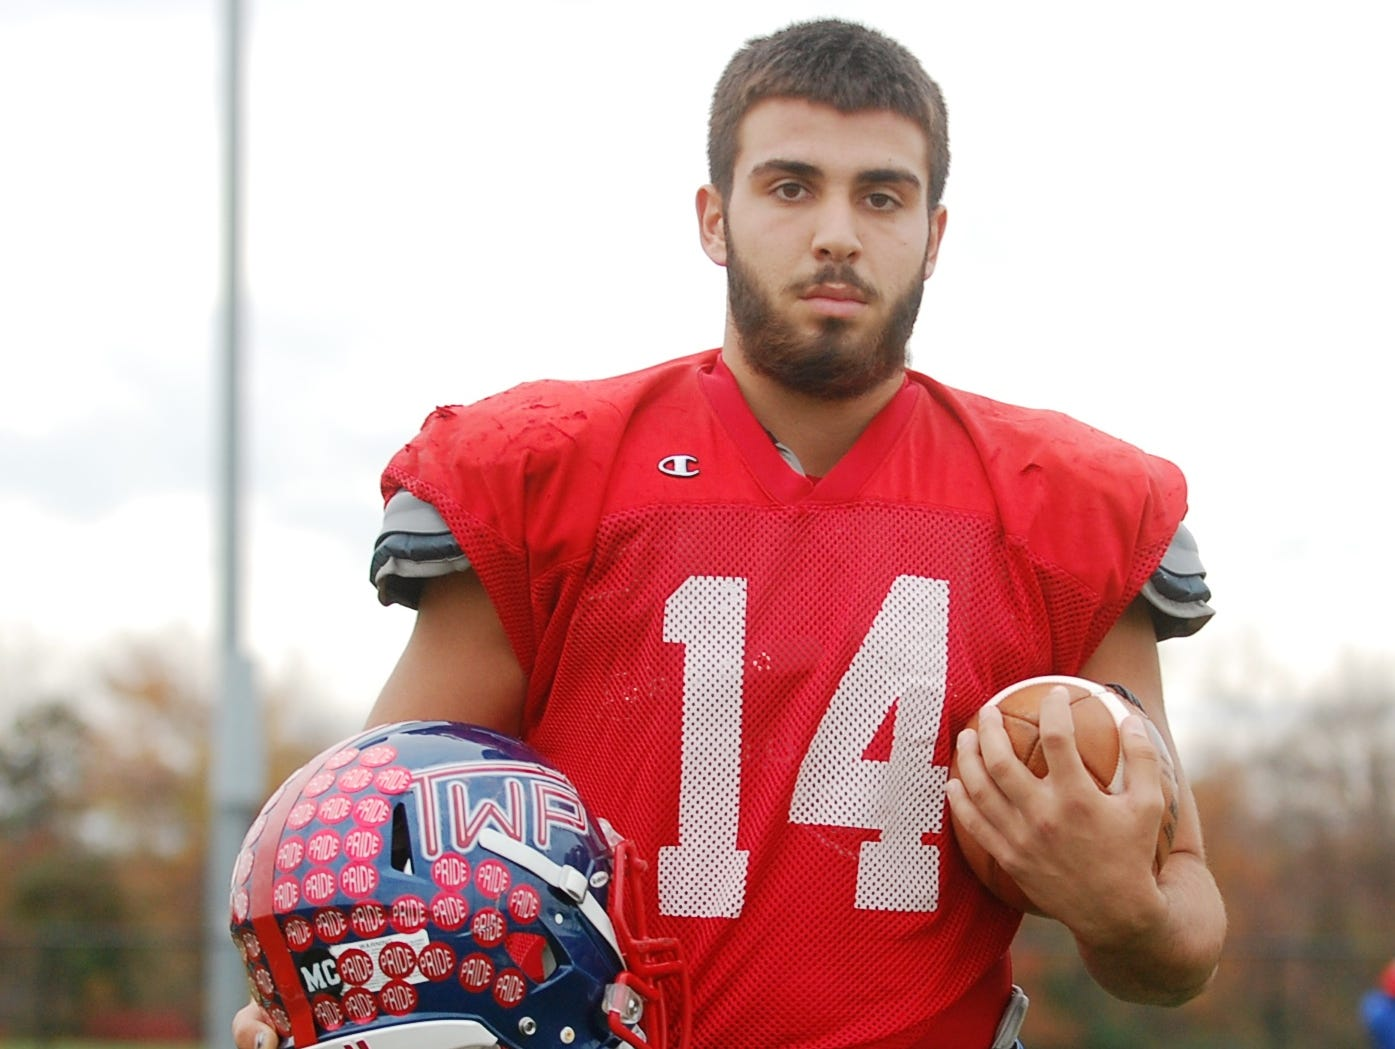 Washington Township senior Nick Grosso had two touchdown catches in the Minutemen's victory over Williamstown on Thanksgiving Day.